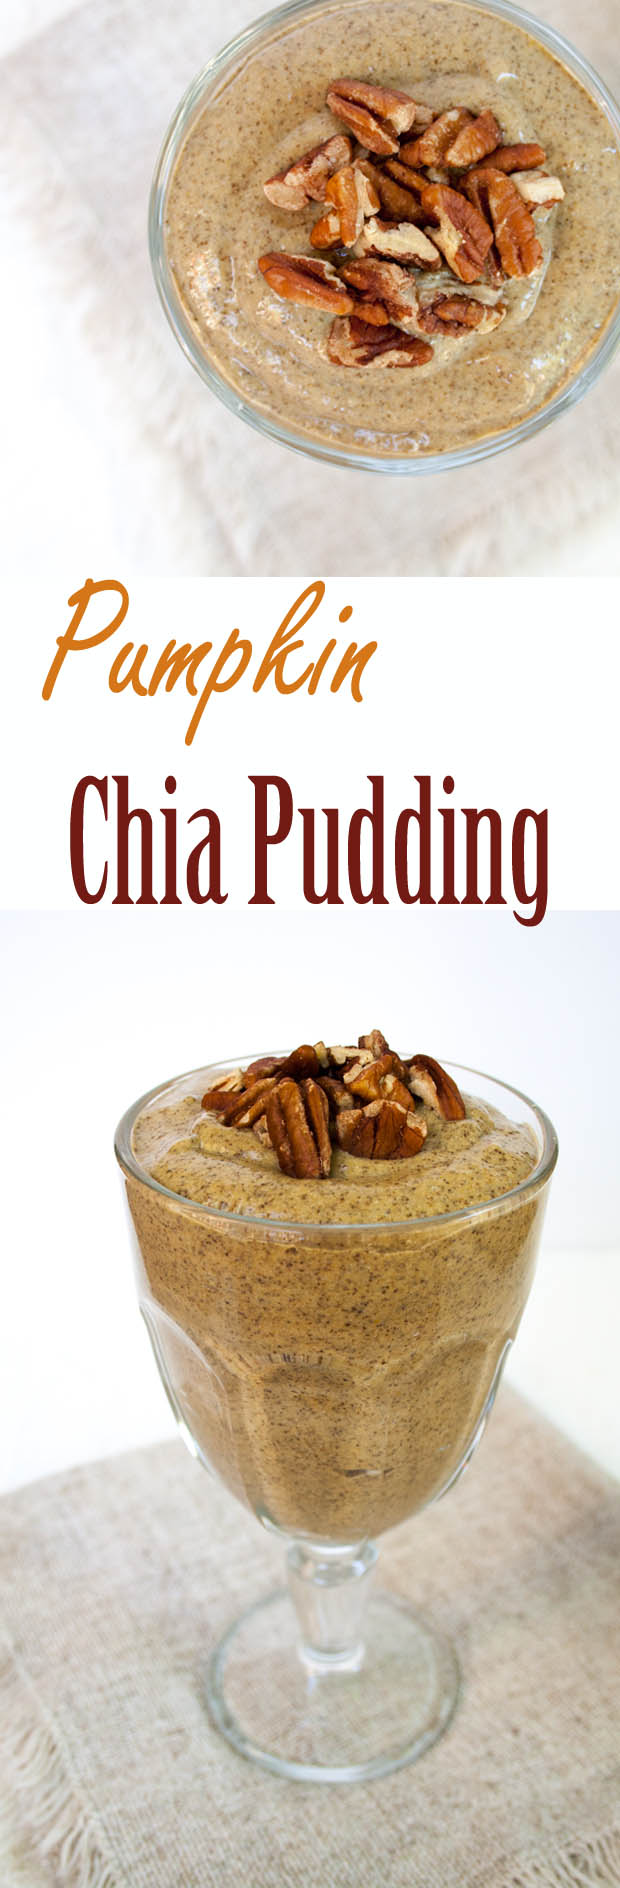 This smooth and creamy Pumpkin Chia Pudding is not only easy to make, but is healthy enough to be eaten for breakfast.